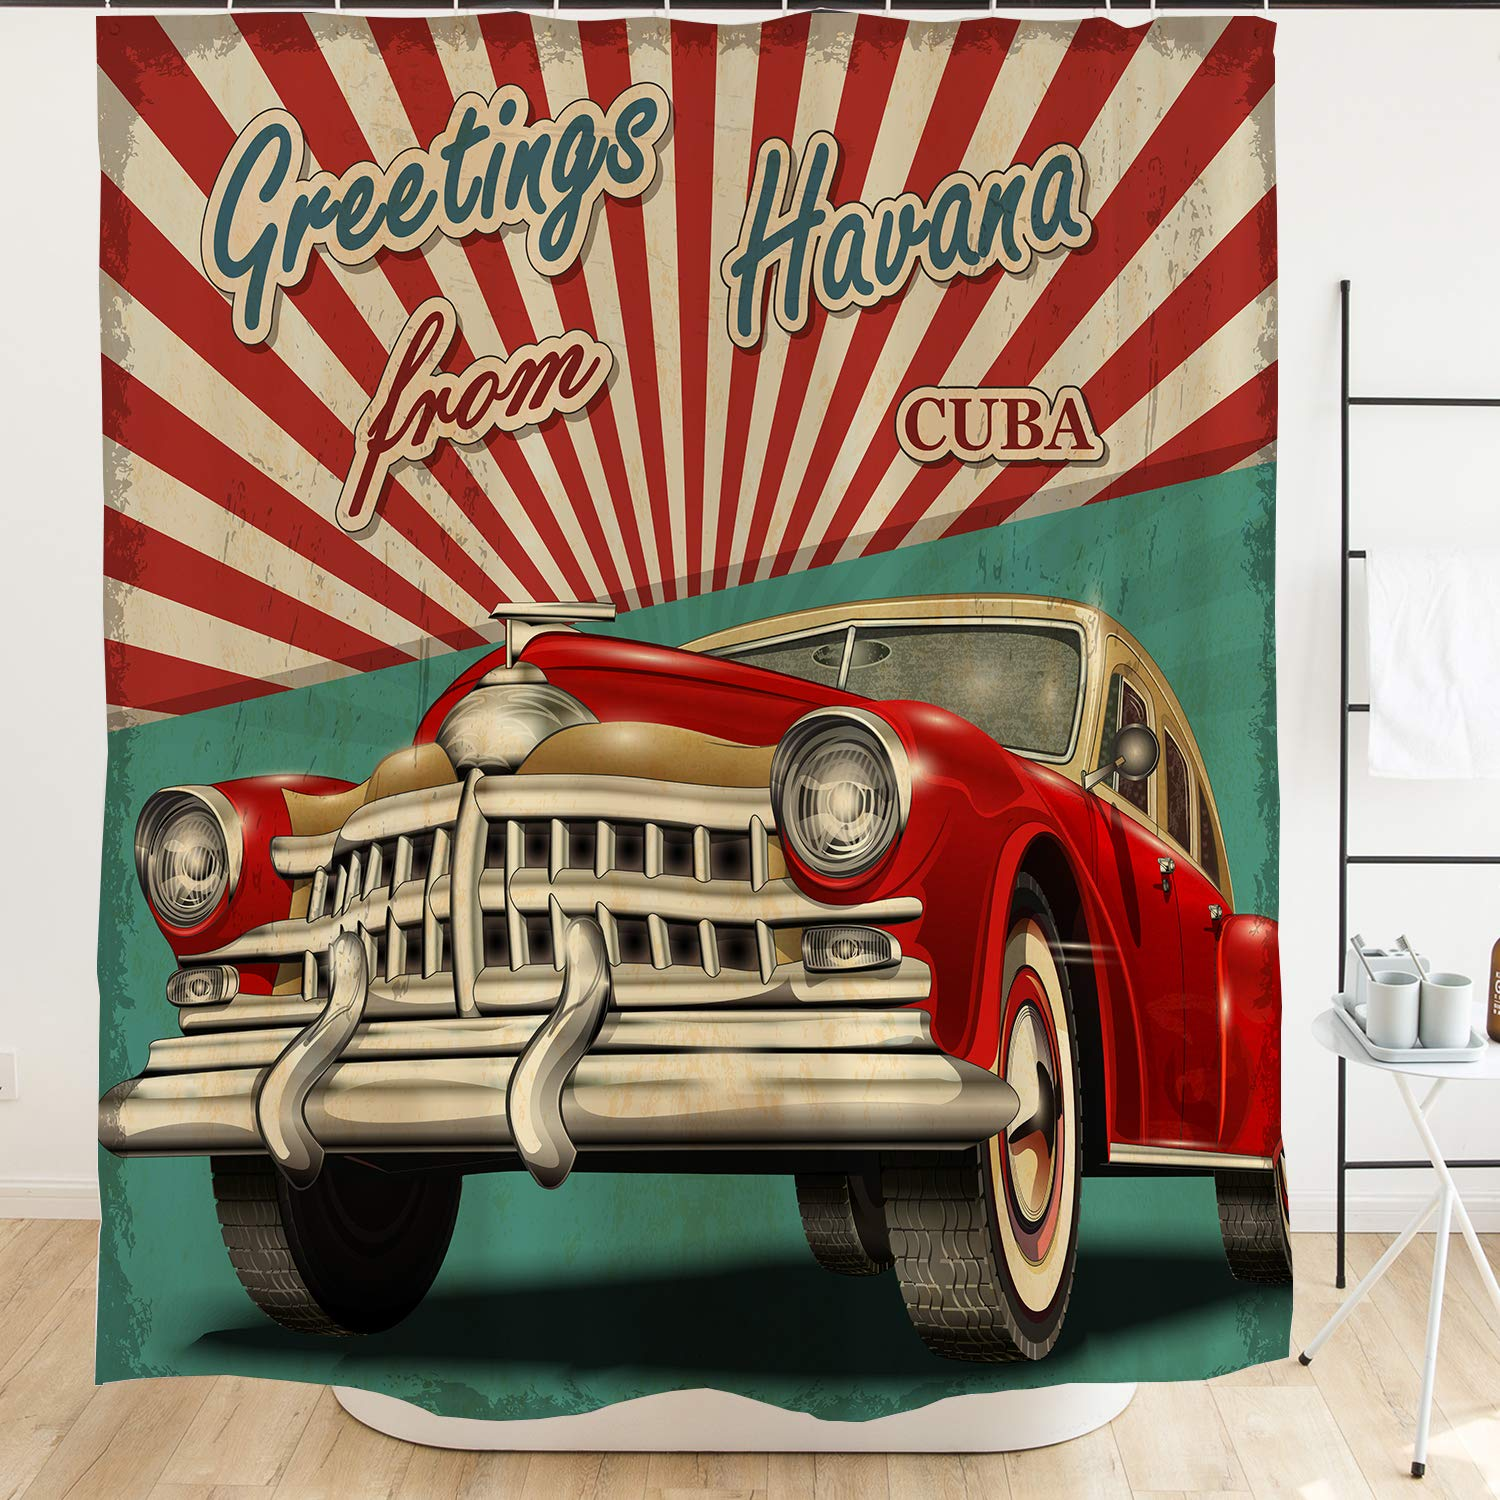 Ofat Home Vintage Car Shower Curtain Havana Cuba Poster 1950s Style Nostalgic Retro Shower Curtian, 72x72 inch Cuba Curtain for Bathroom Home Decor